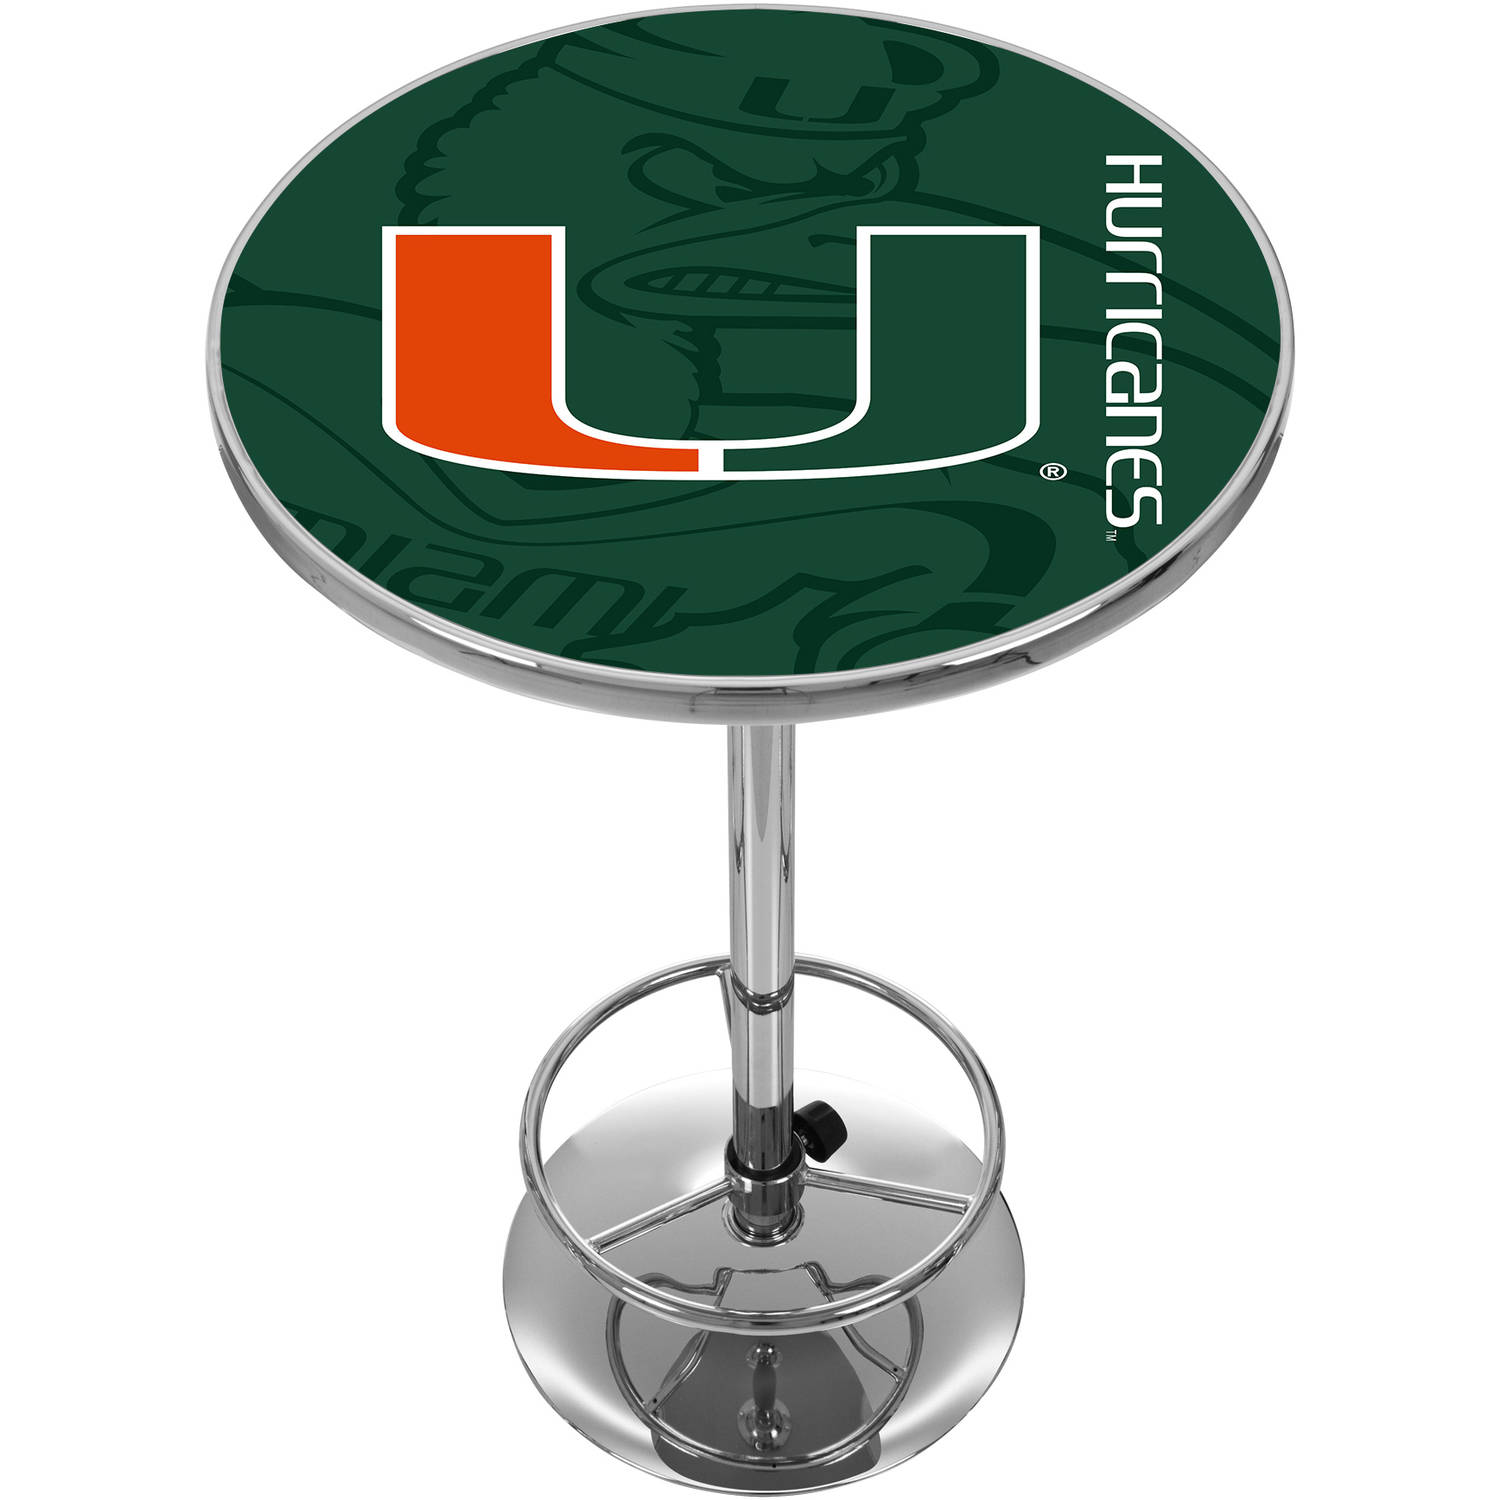 University of Miami Chrome Pub Table, Fade